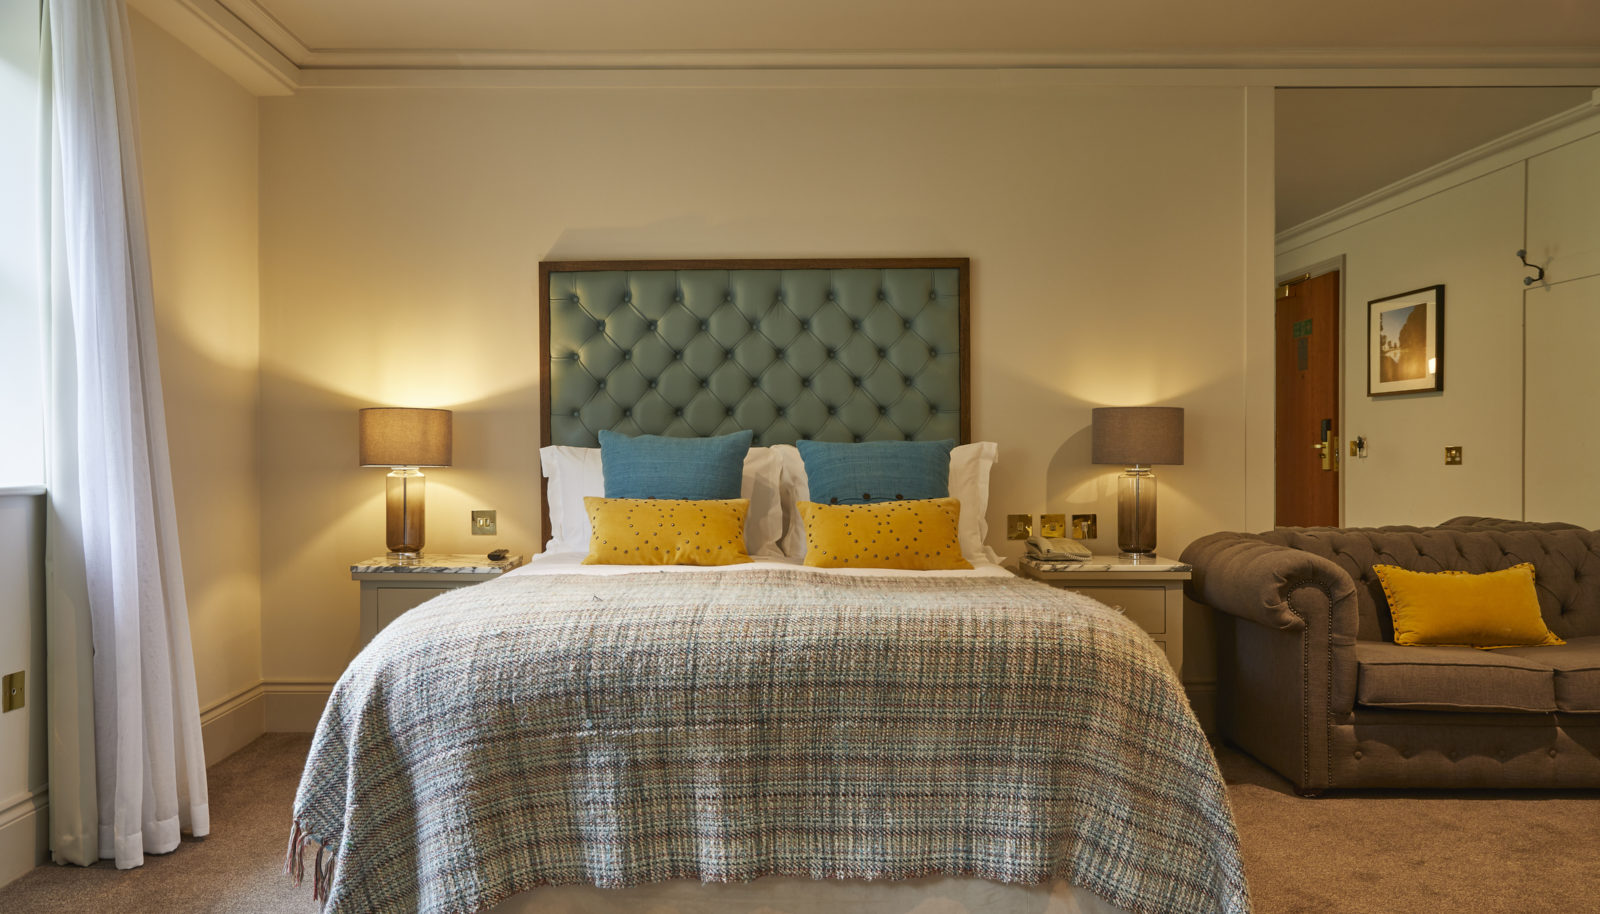 Relaxed double room bed with teal headboard and sofa